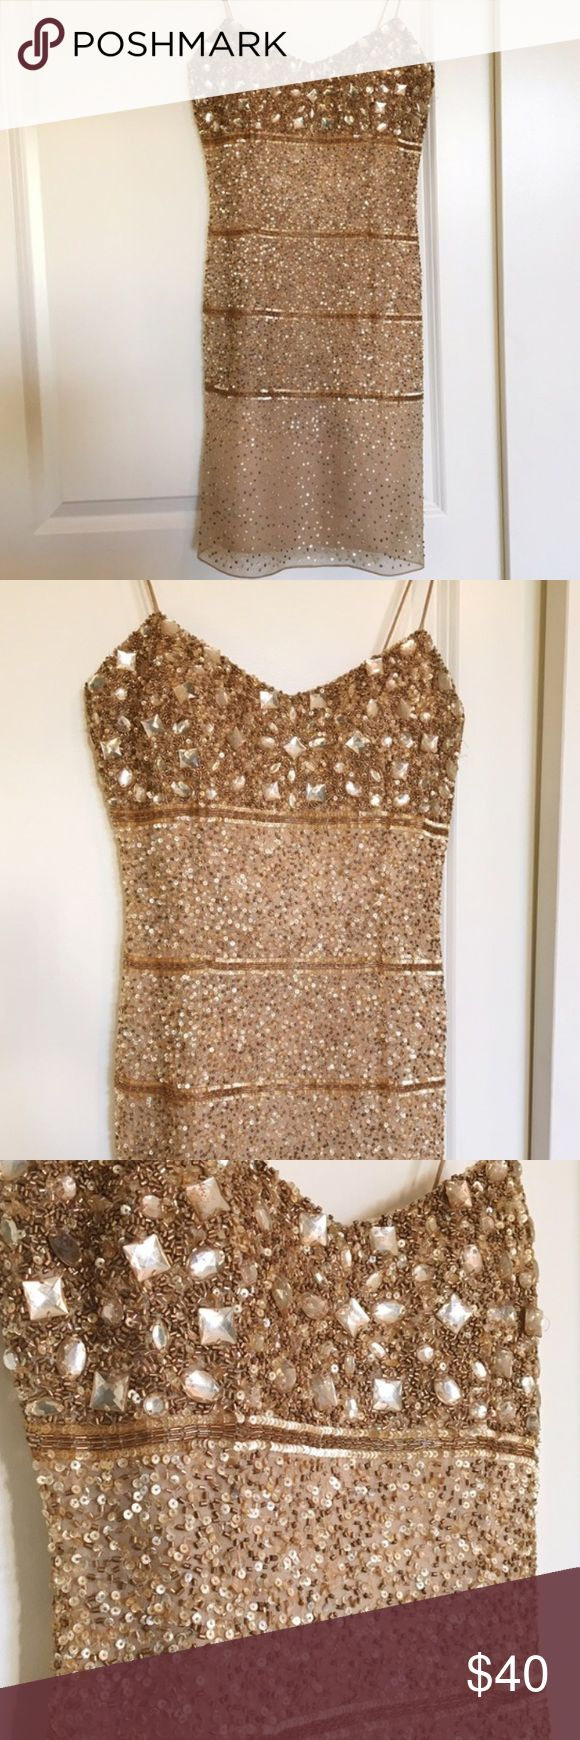 Aidan Mattox Gold Sequin and Beaded Dress This is an absolutely gorgeous dress! It is in great condition except for the strap needs a little reinforcement. Very minor fix and reflected in the price. Aidan Mattox is a very nice brand Aidan Mattox Dresses